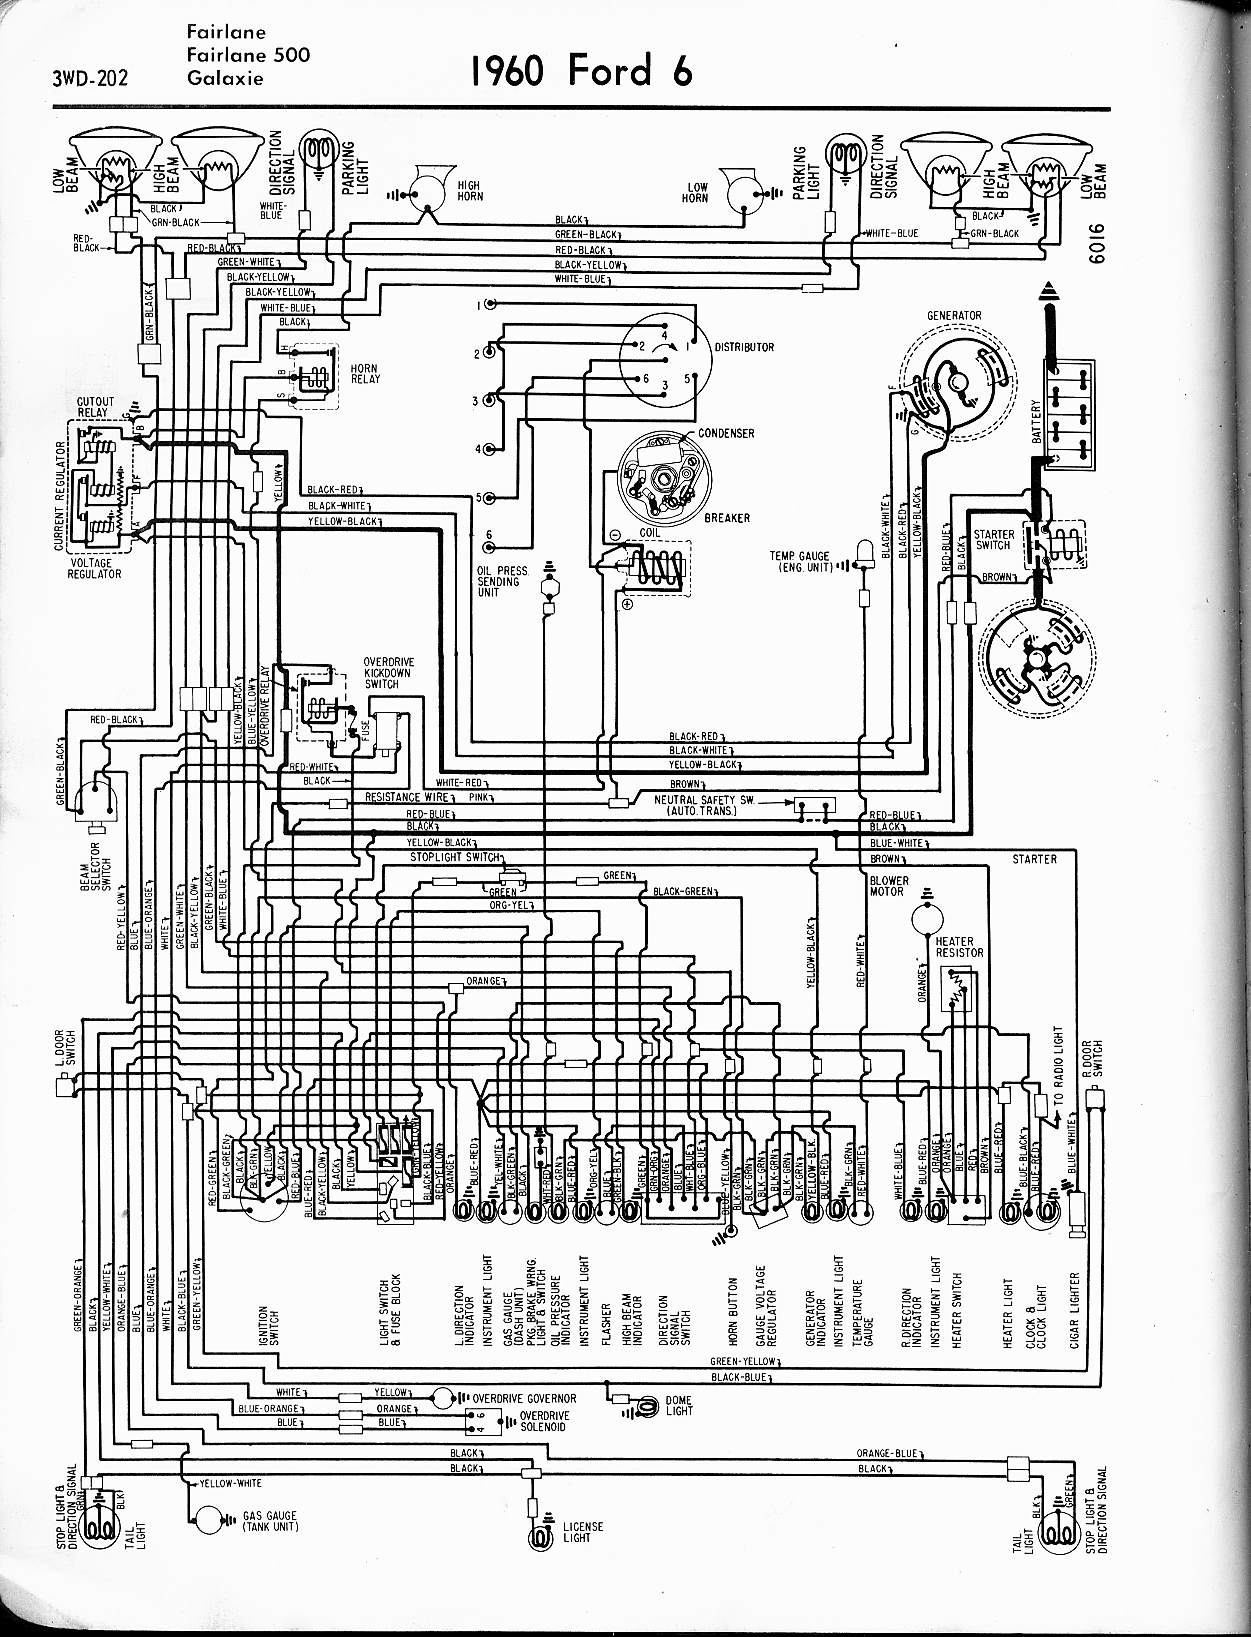 MWire5765 202 57 65 ford wiring diagrams 1960 ford f100 wiring diagram at bayanpartner.co